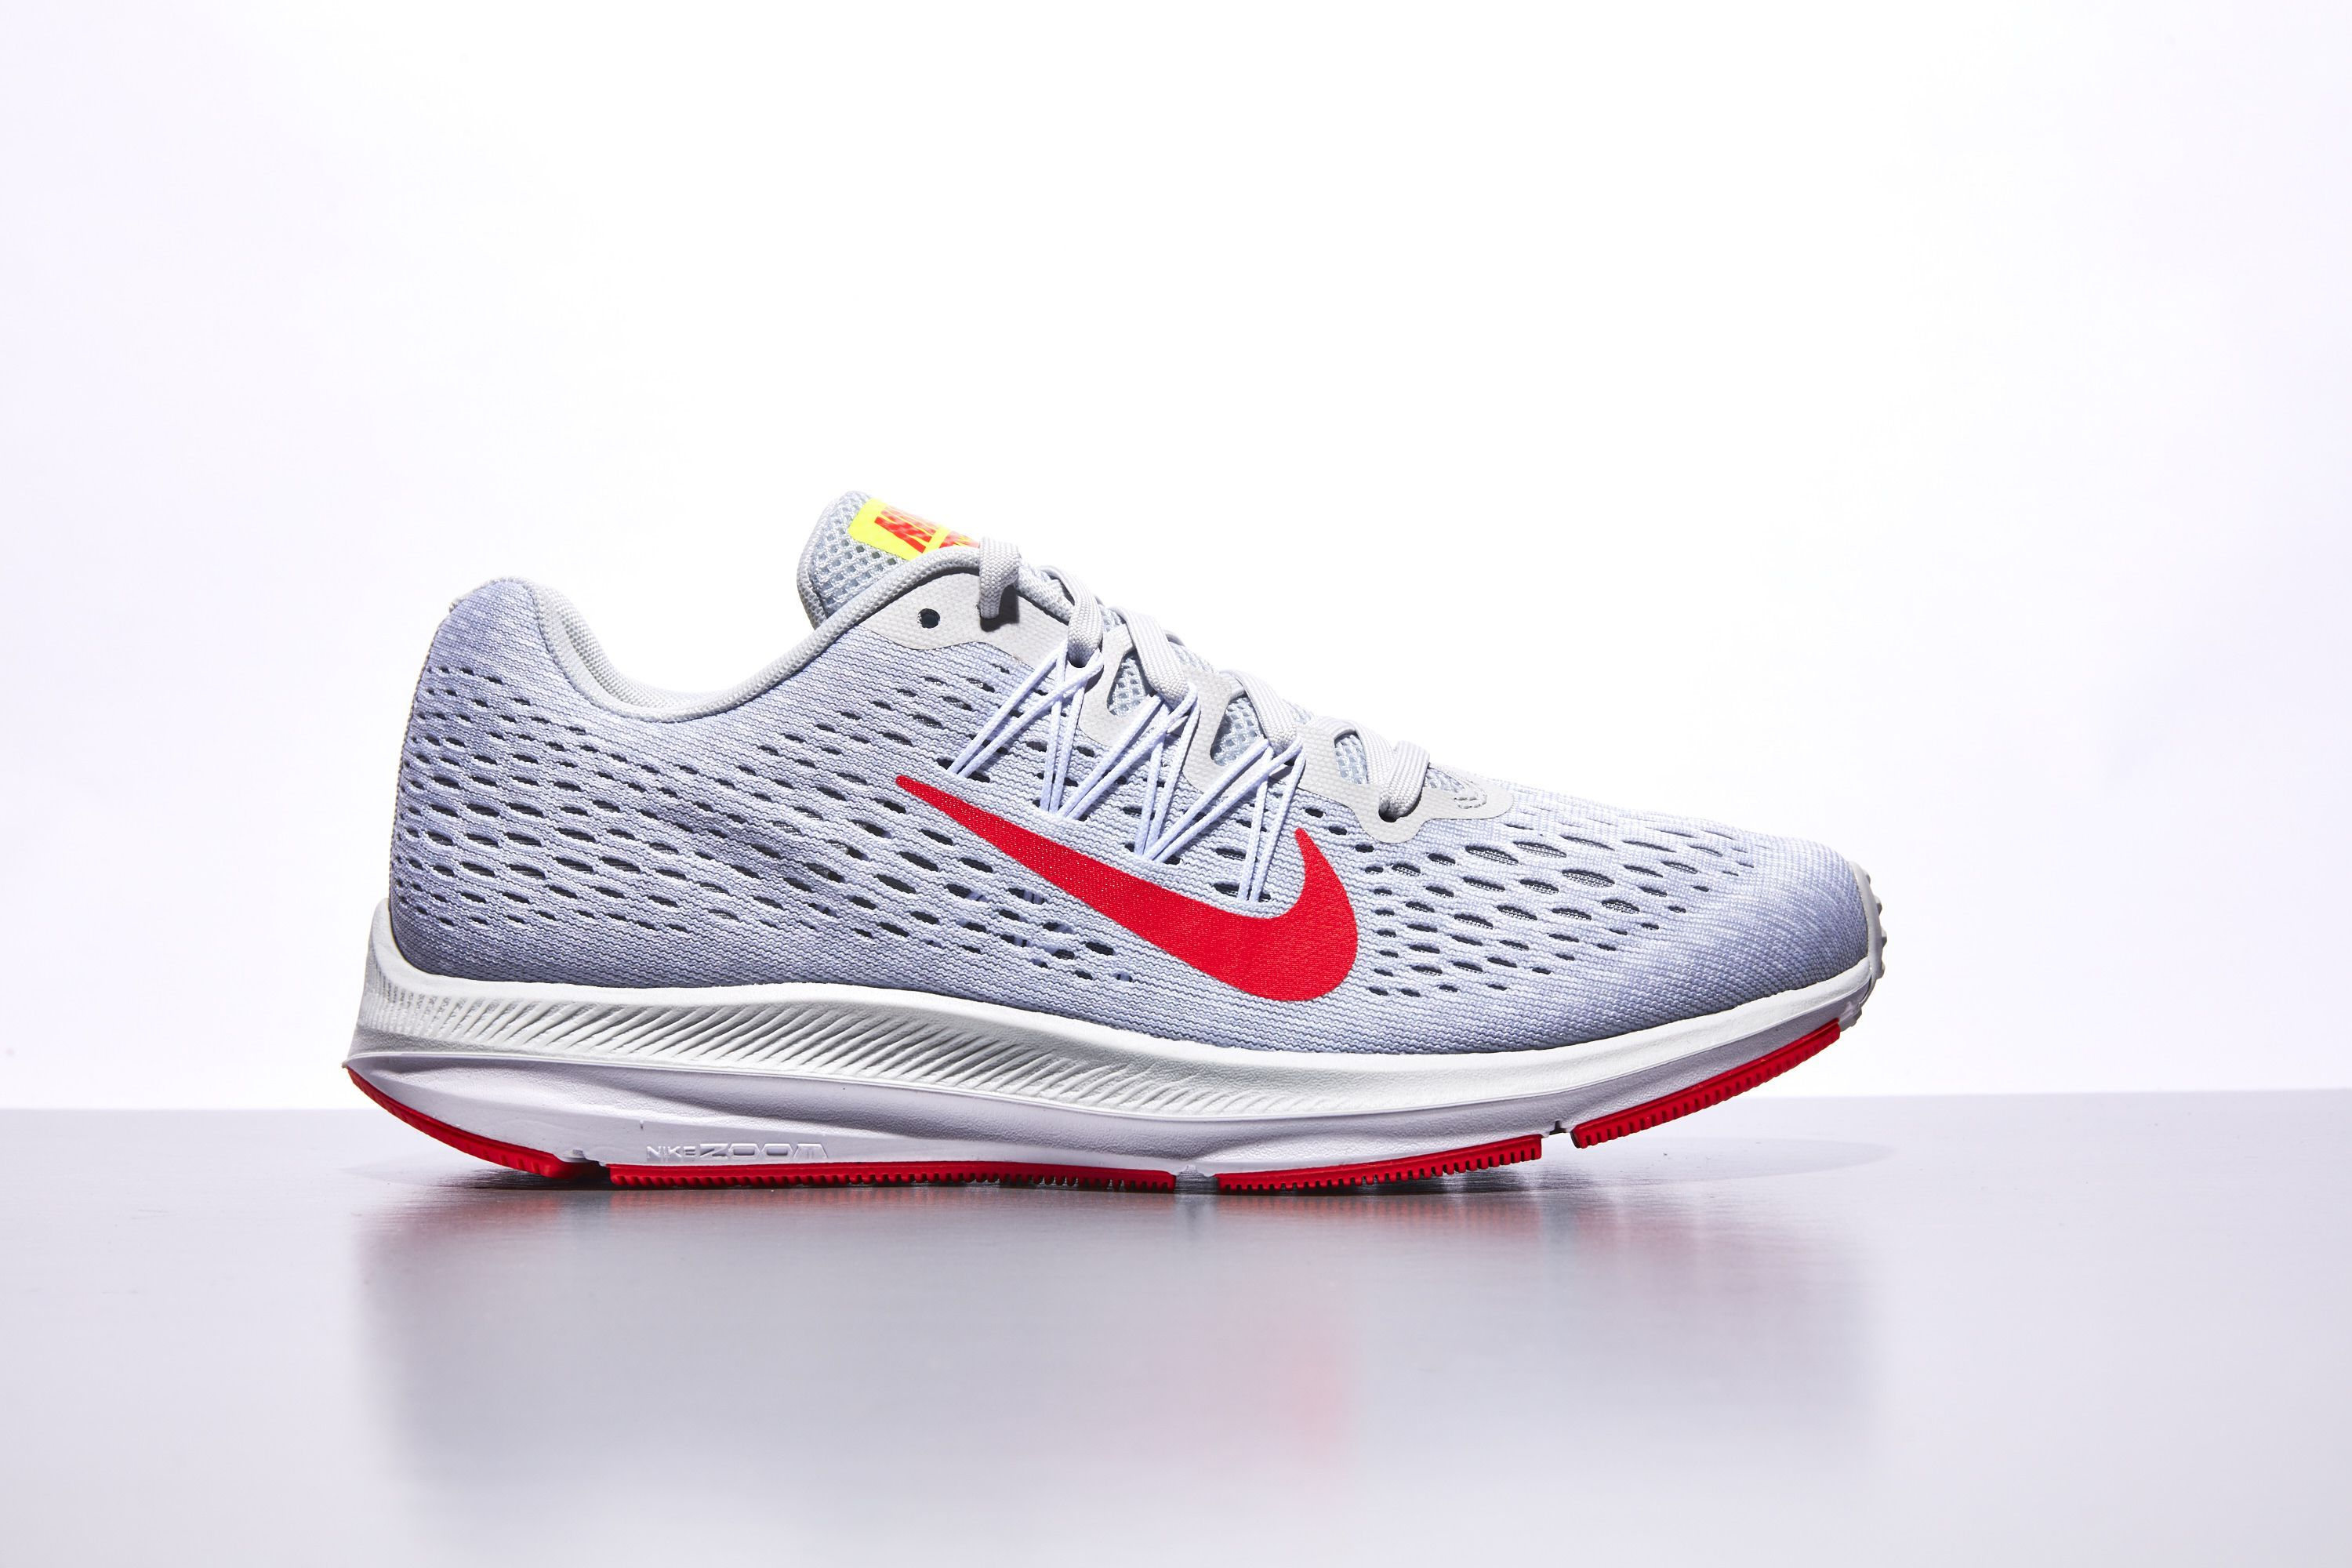 Nike Air Zoom Winflo 5 Review Cheap Running Shoes